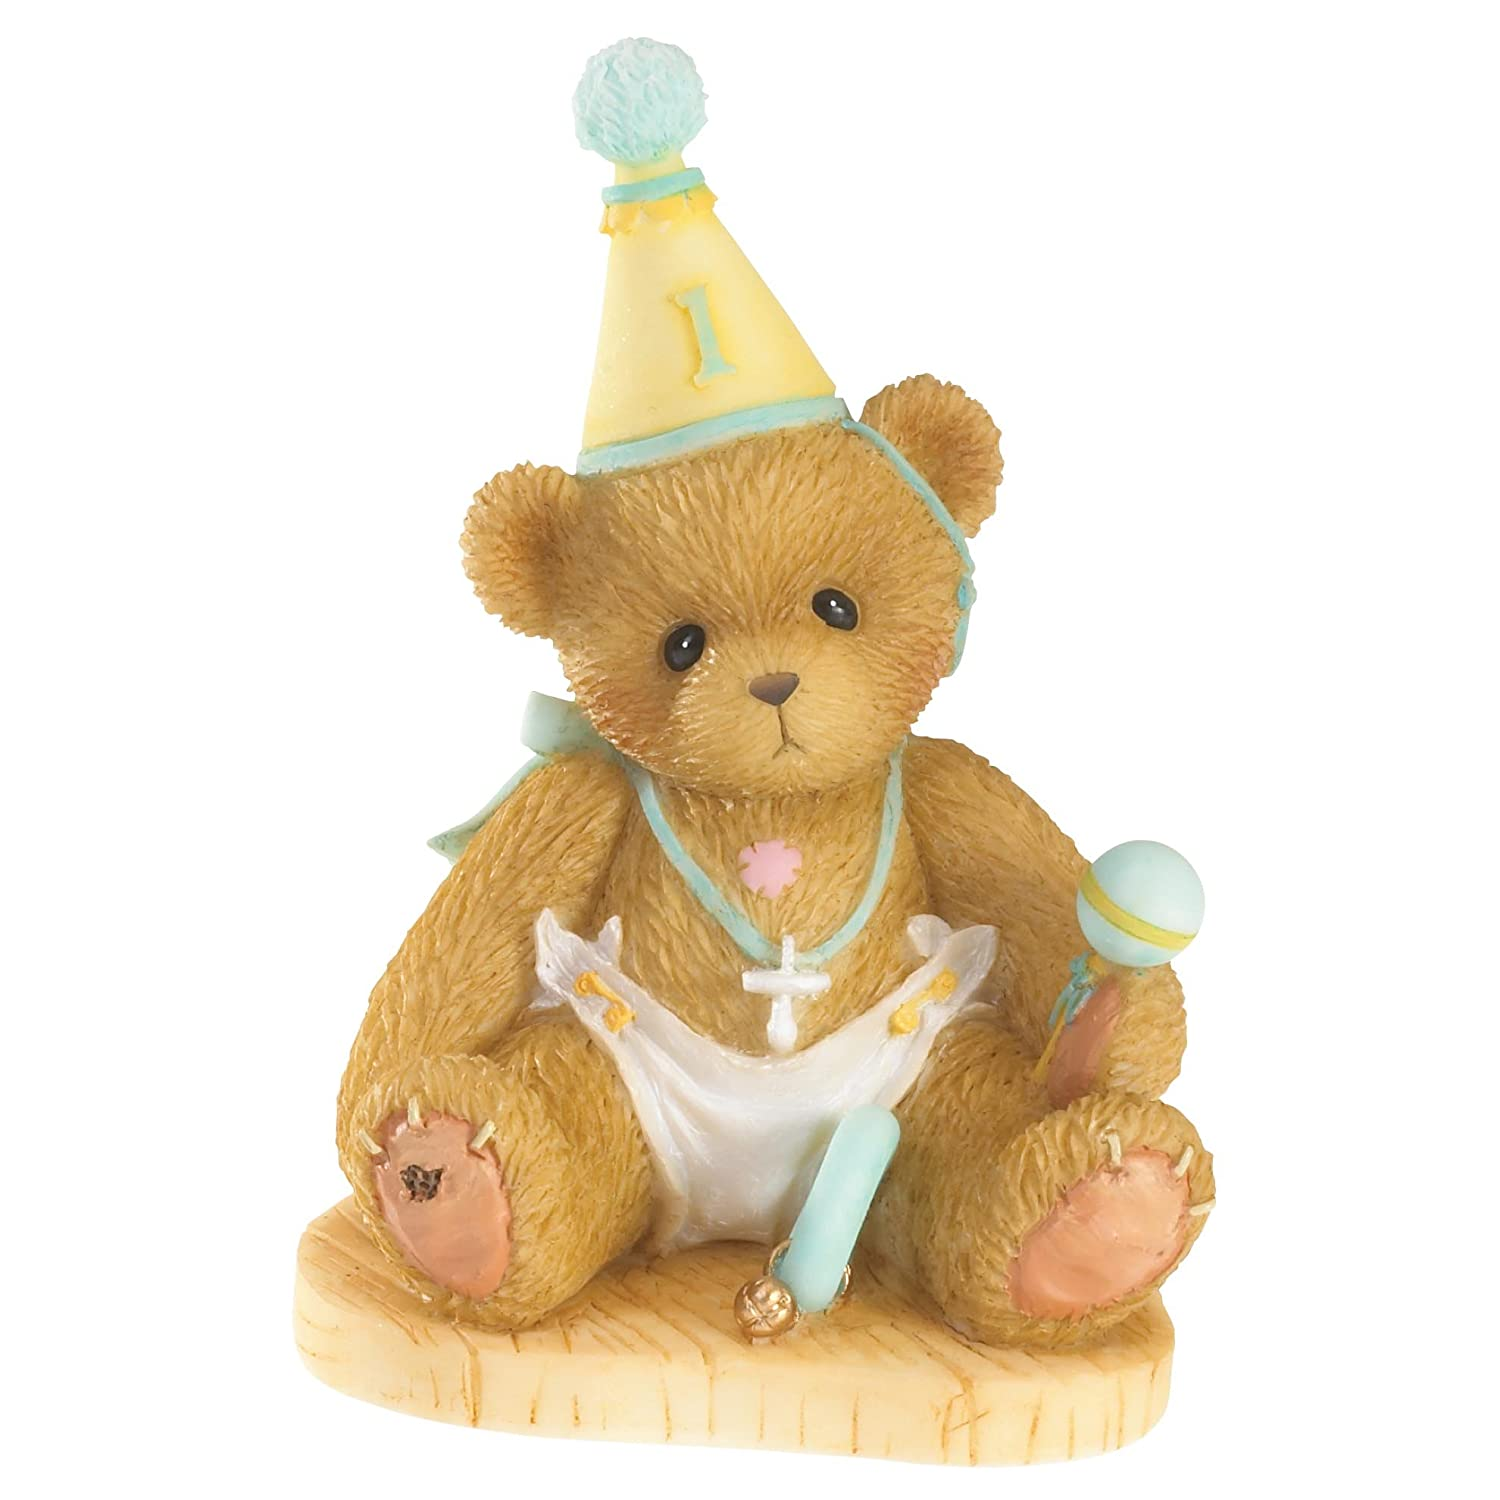 Cherished Teddies Age 1 Onederful To Be Through The Years Series 4020572